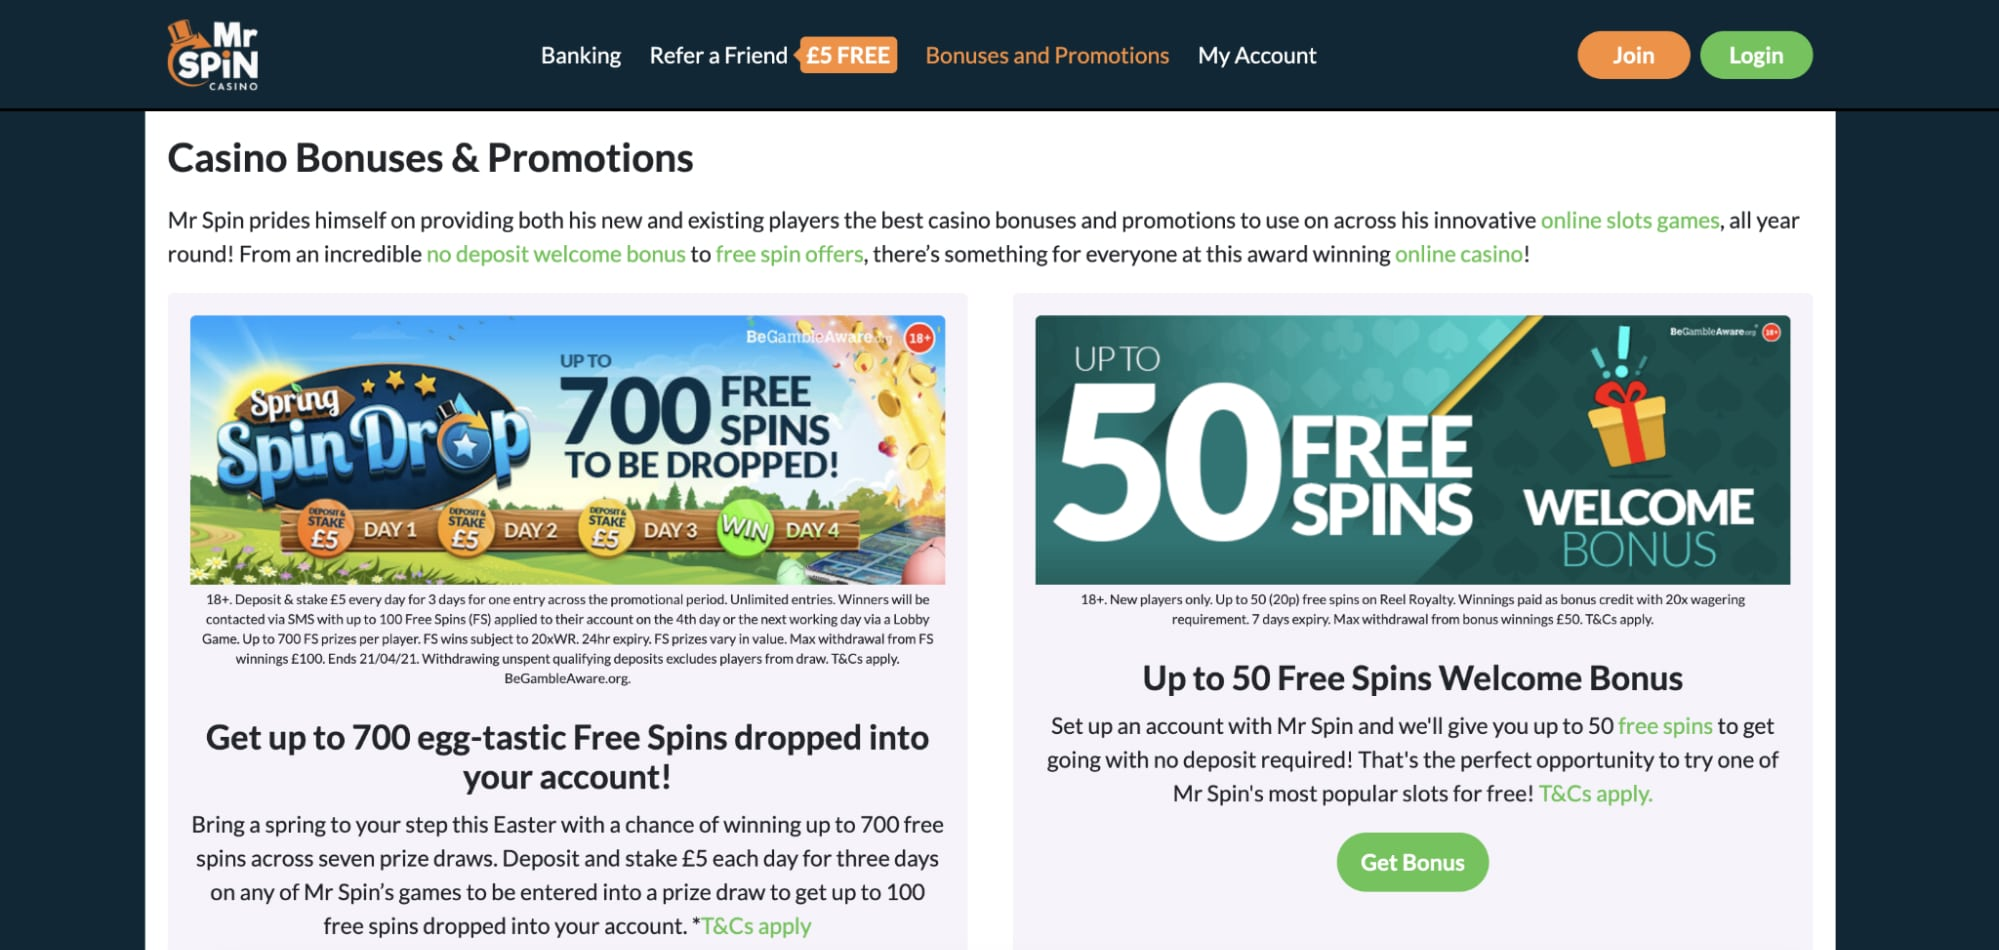 Get up to 50 free spins mrspin